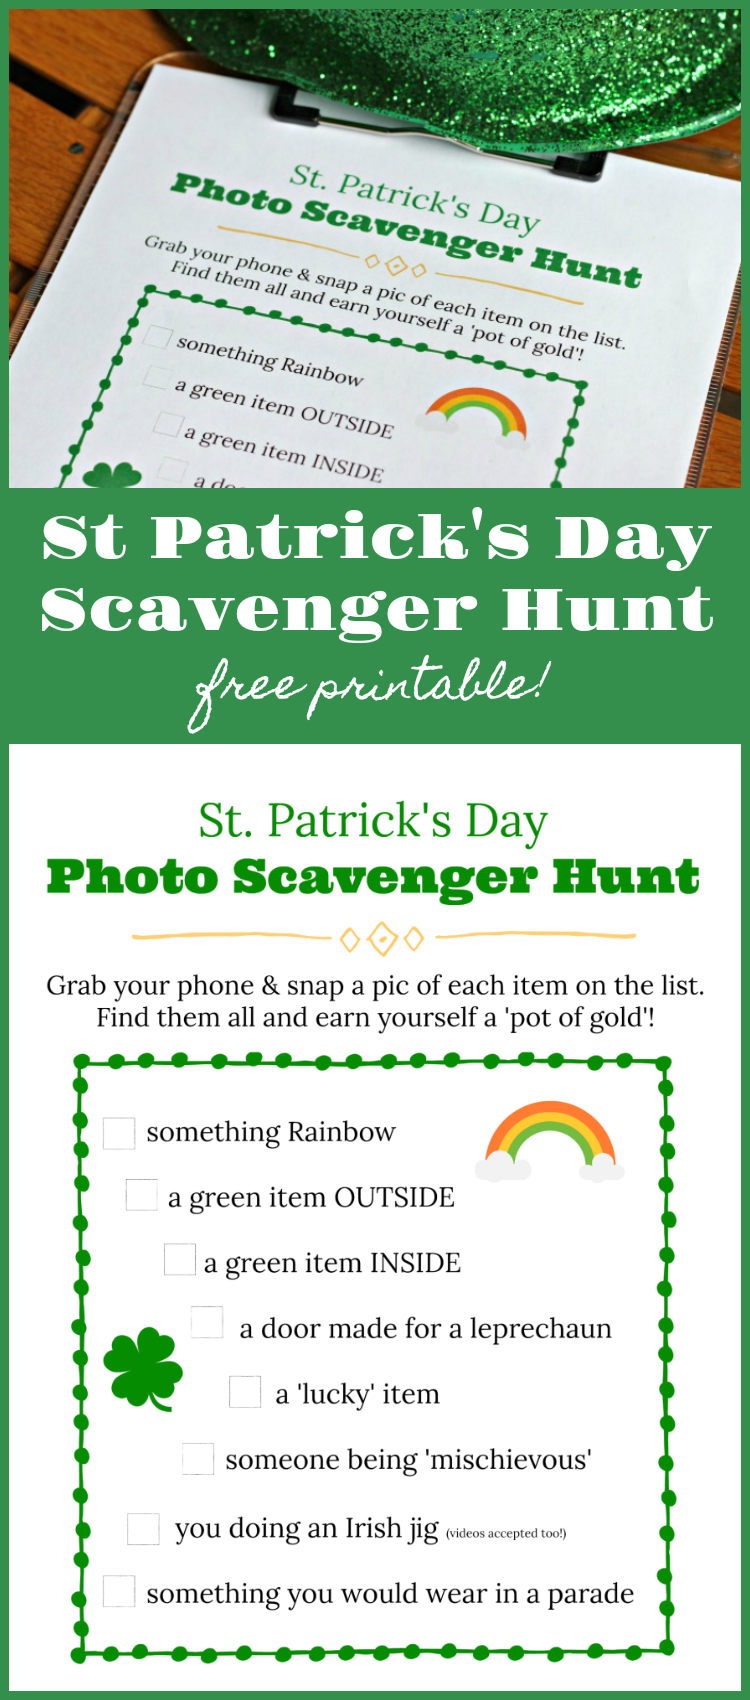 St Patrick's Day printable photo scavenger hunt list